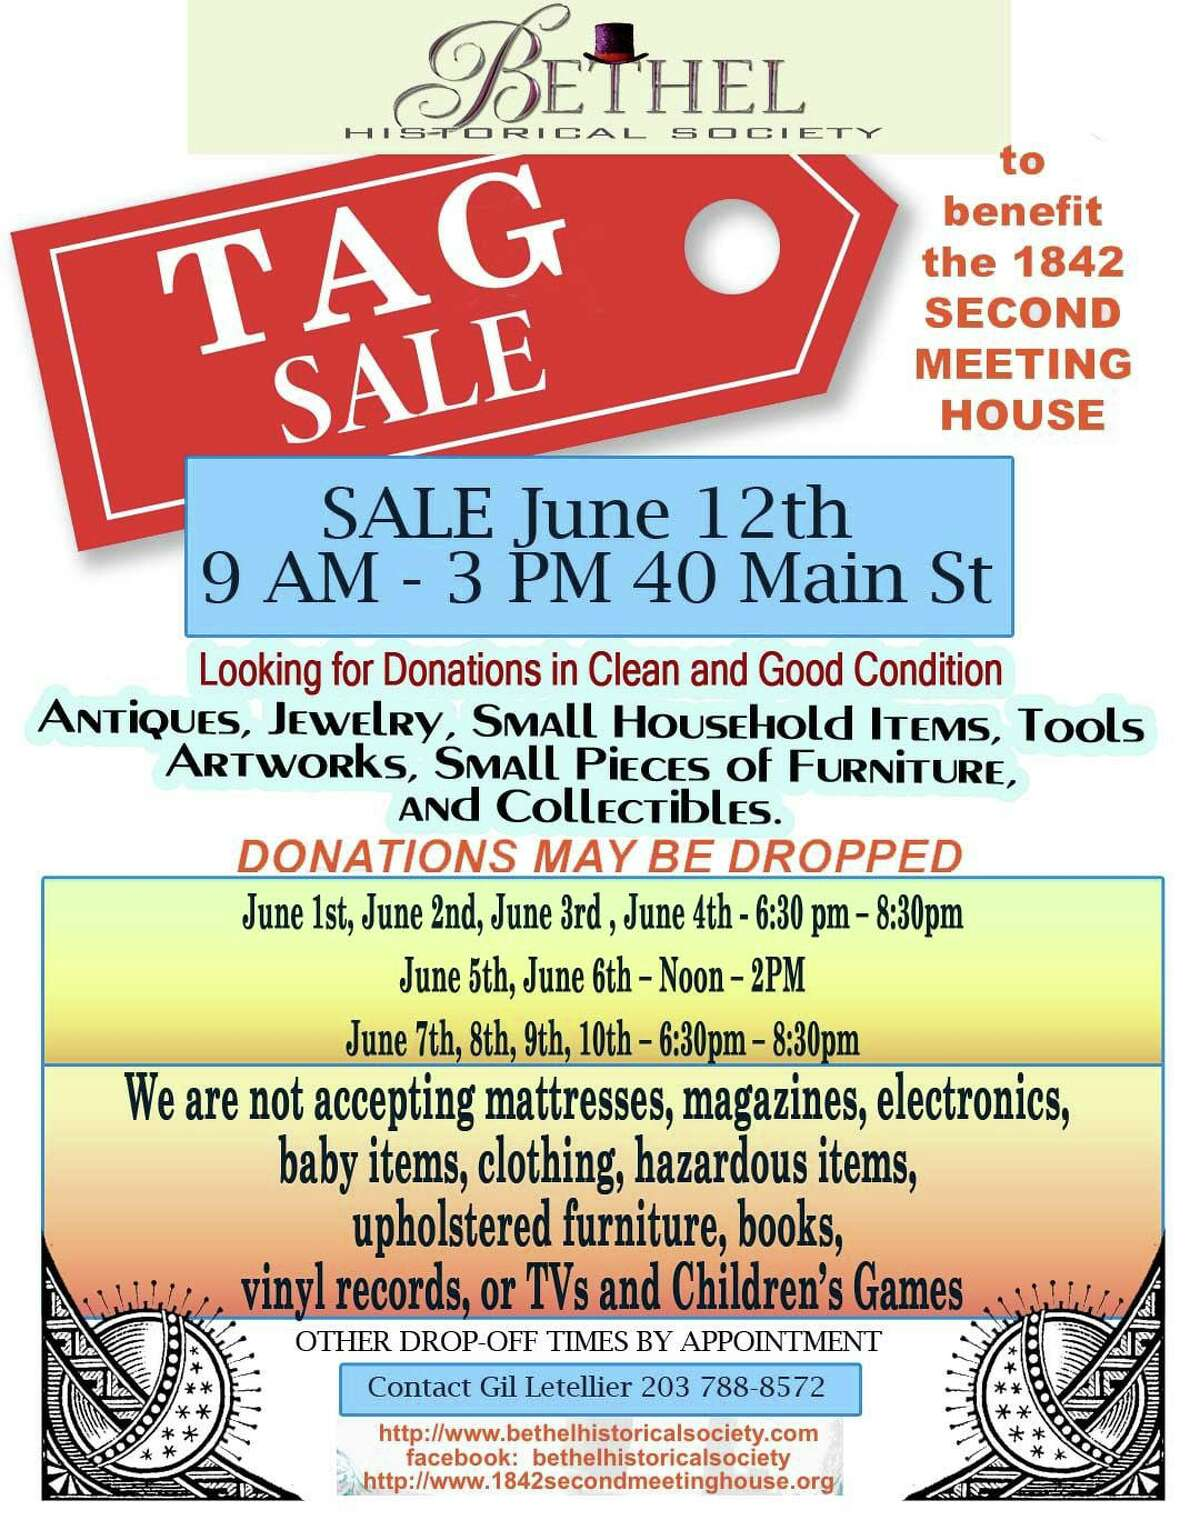 The Bethel Historical Society will hold a tag sale June 12, 2021, to benefit the 1842 Second Meeting House, the society's home at 40 Main St.